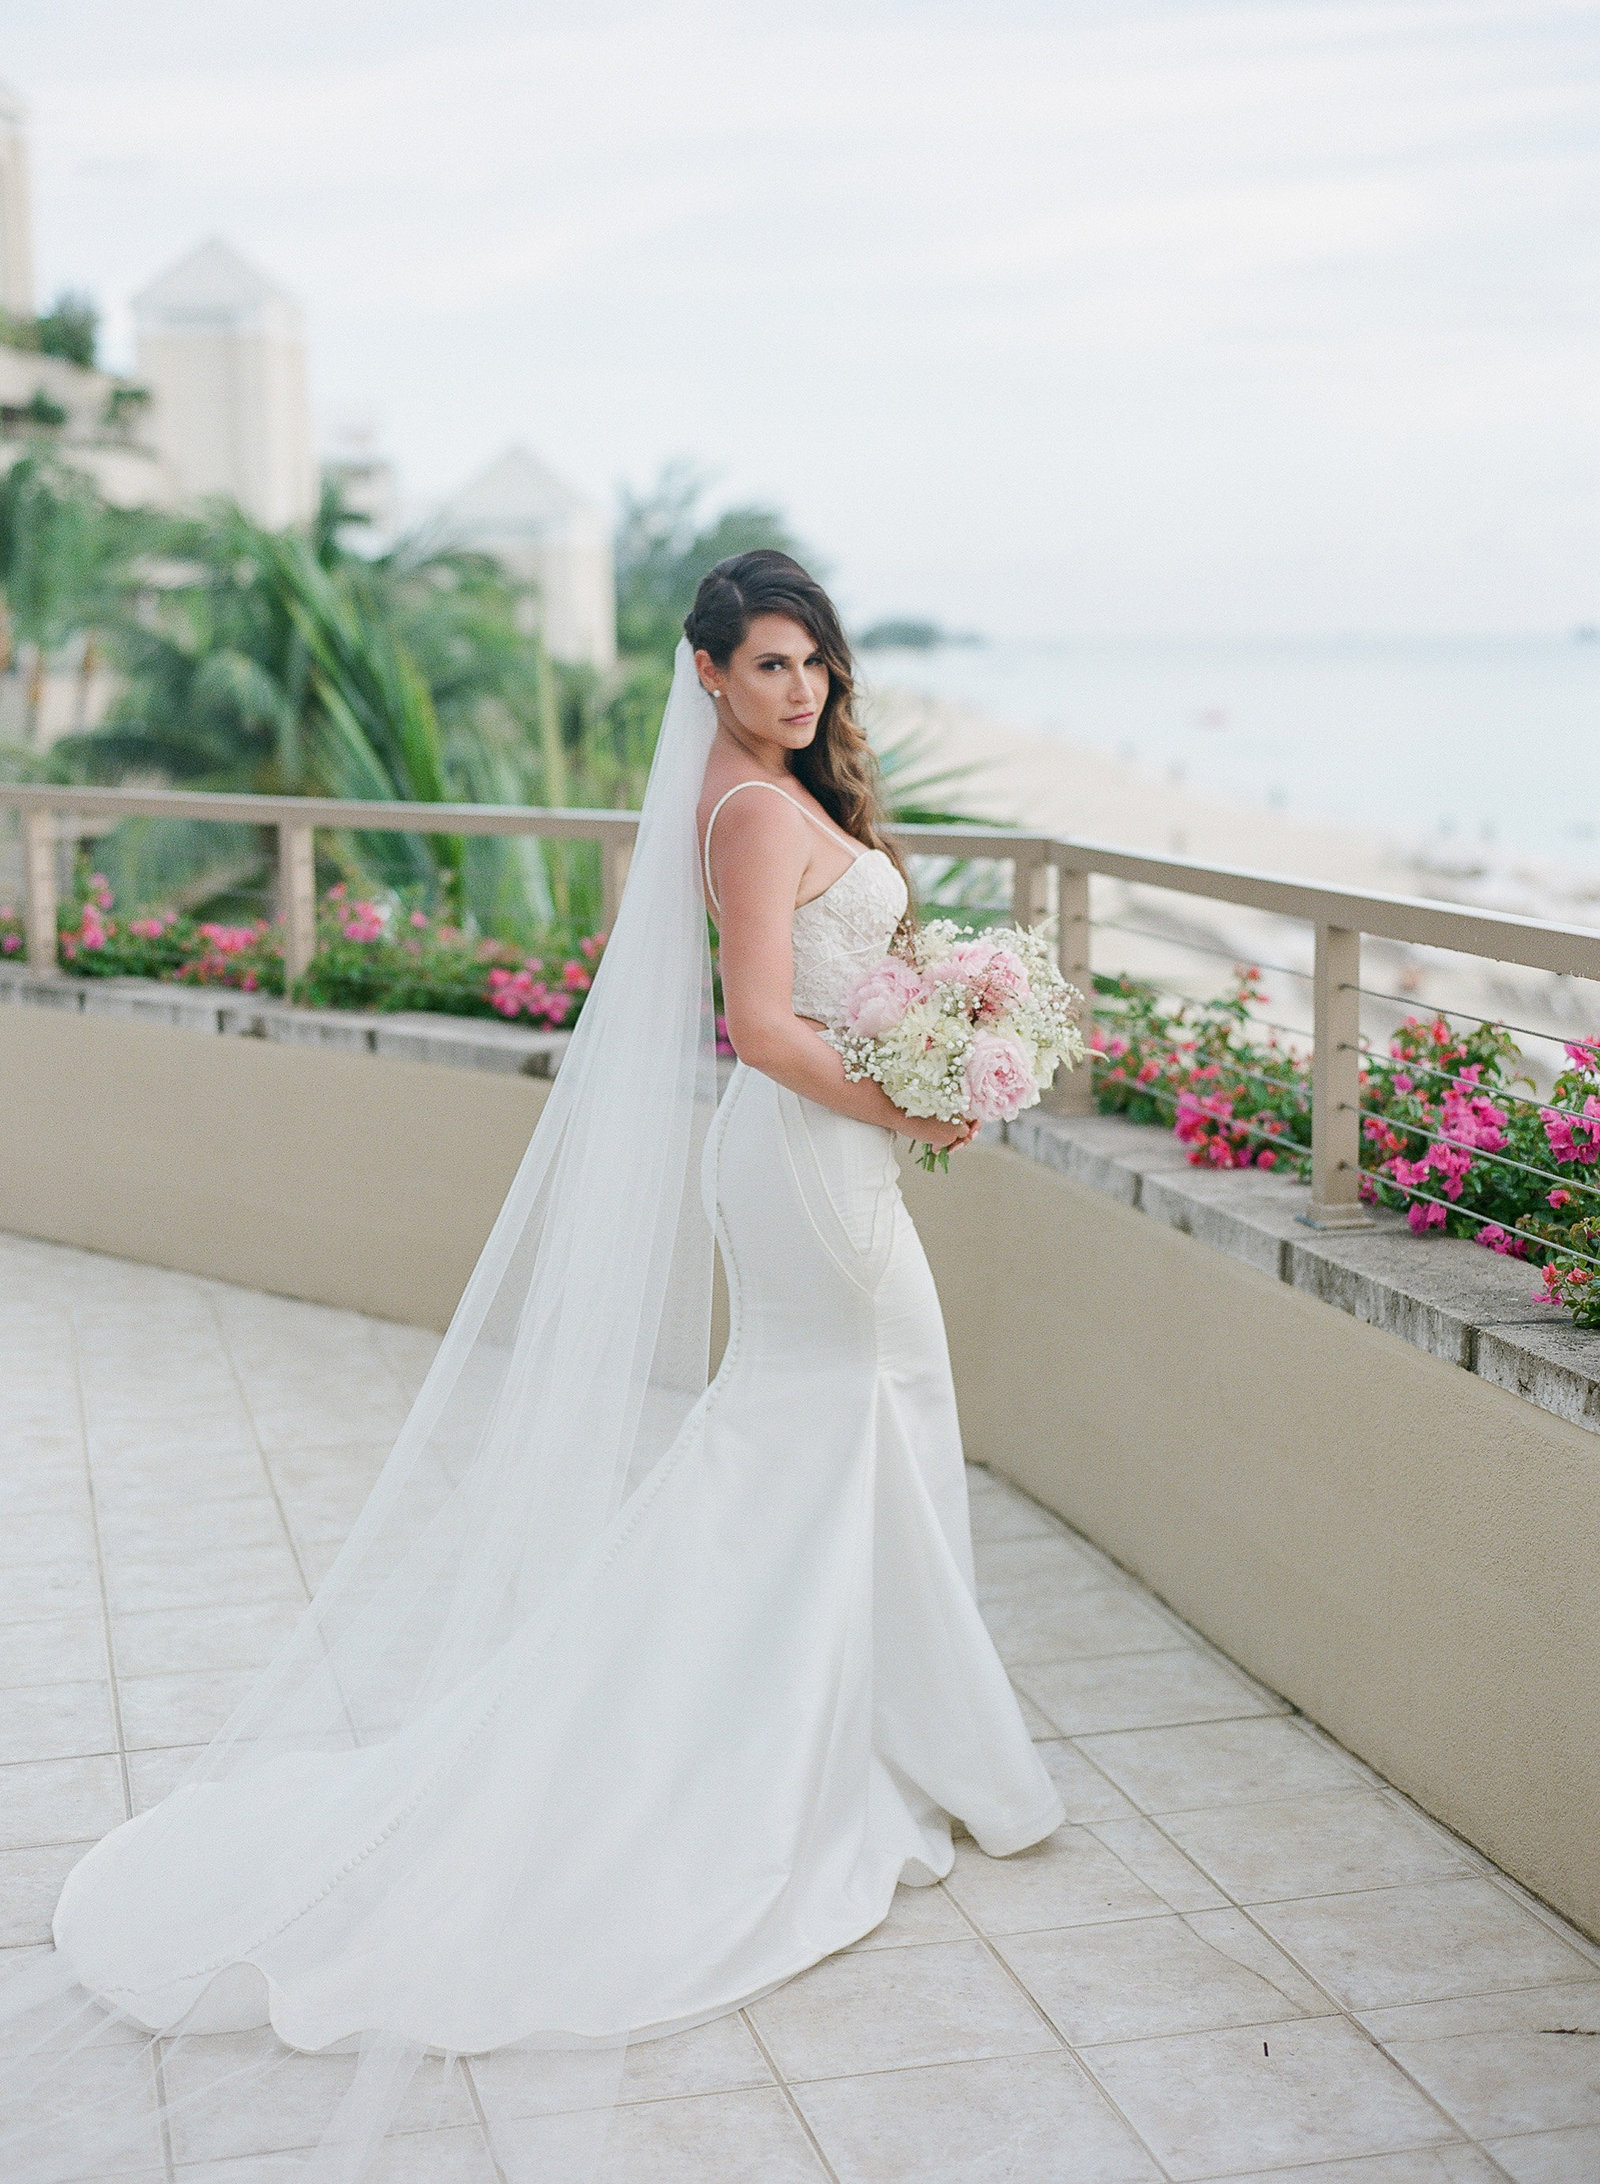 20180530-Pura-Soul-Photo-Ritz-Grand-Cayman-Wedding